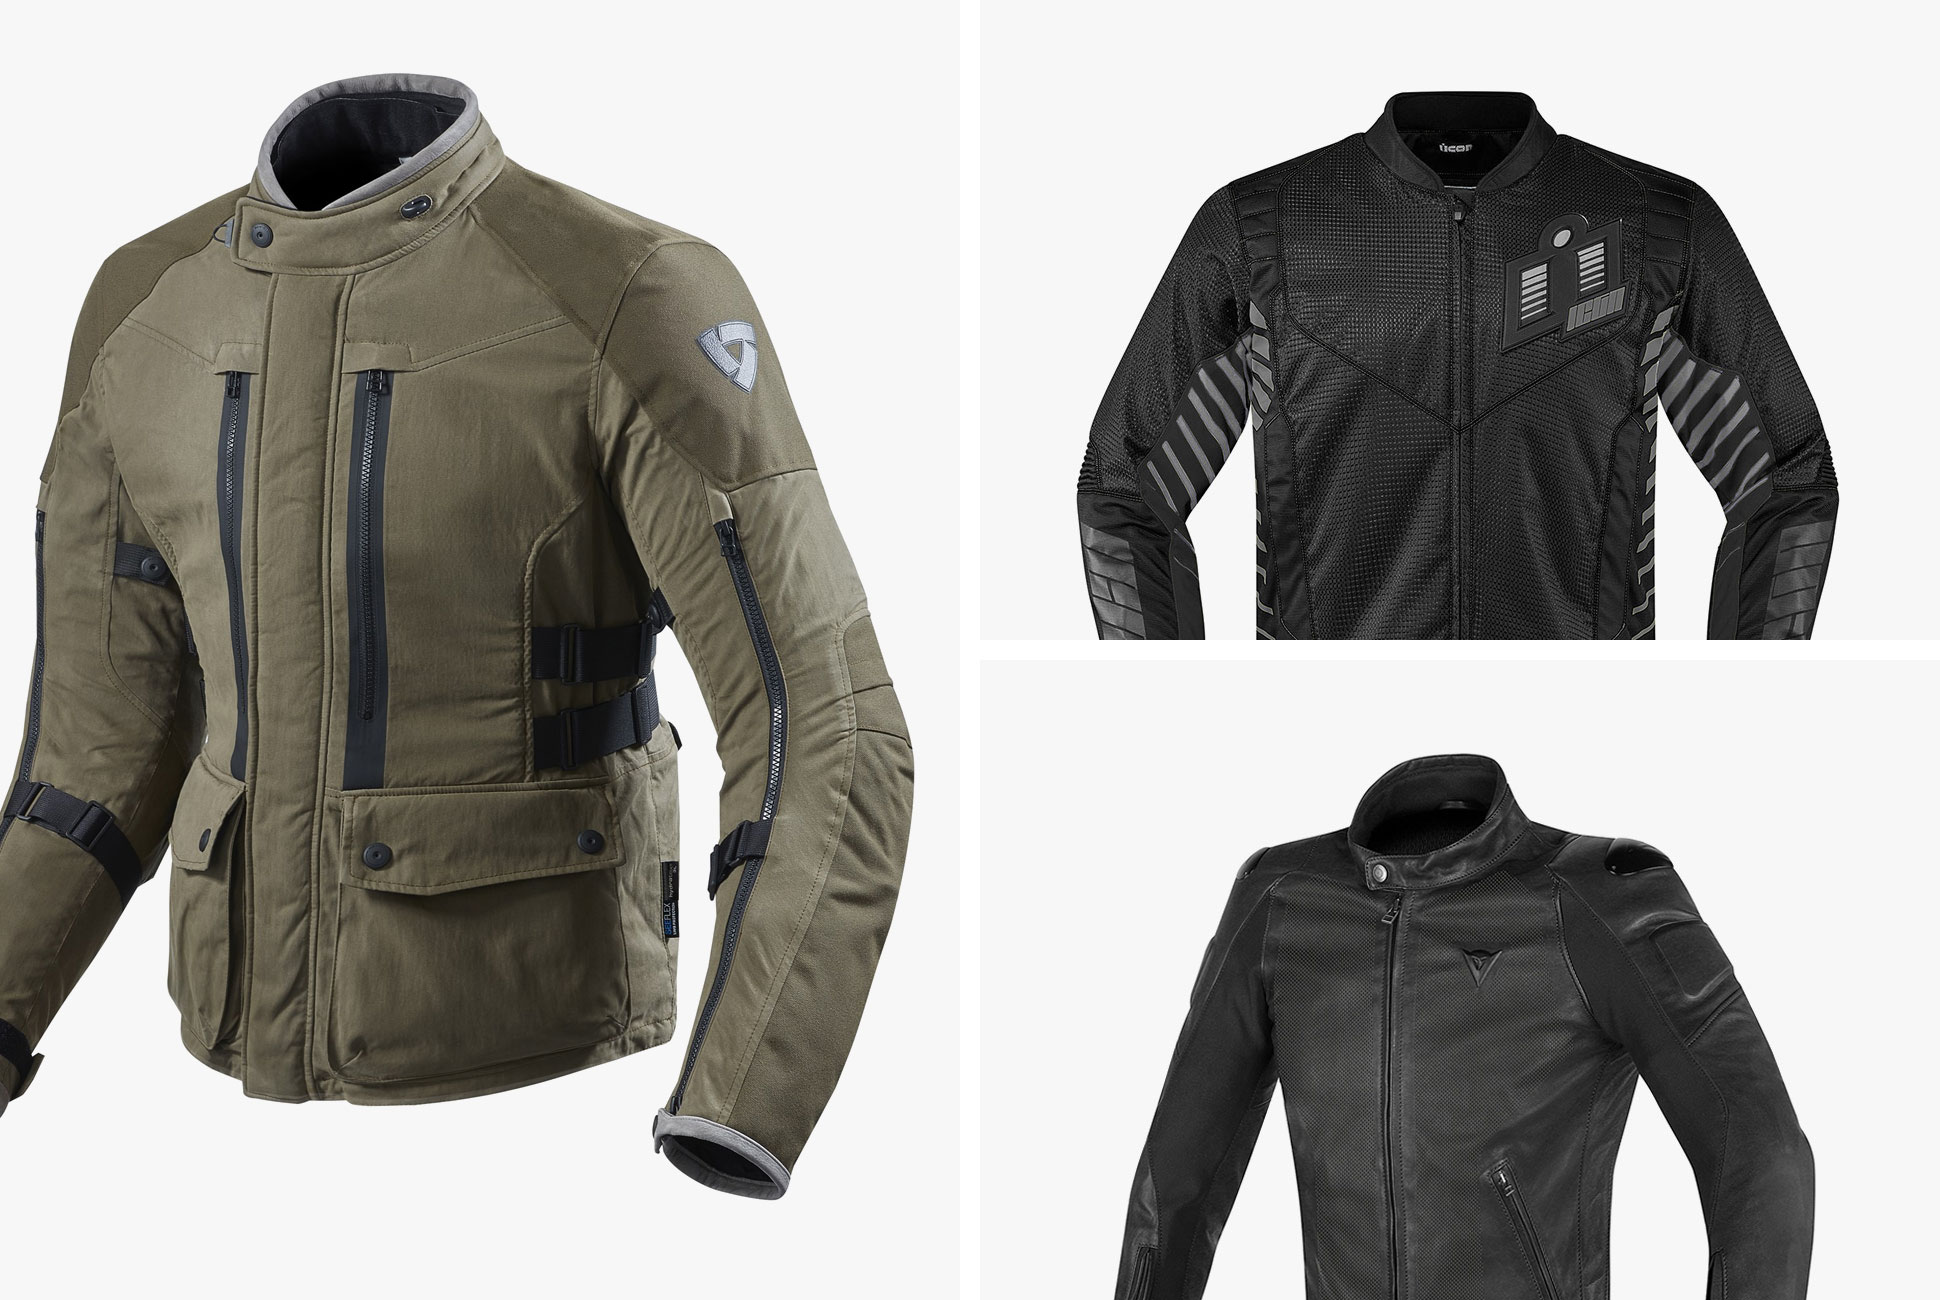 motorcycle jackets now that weu0027re deep into summer, the temptation to go riding in just vsjsxhu